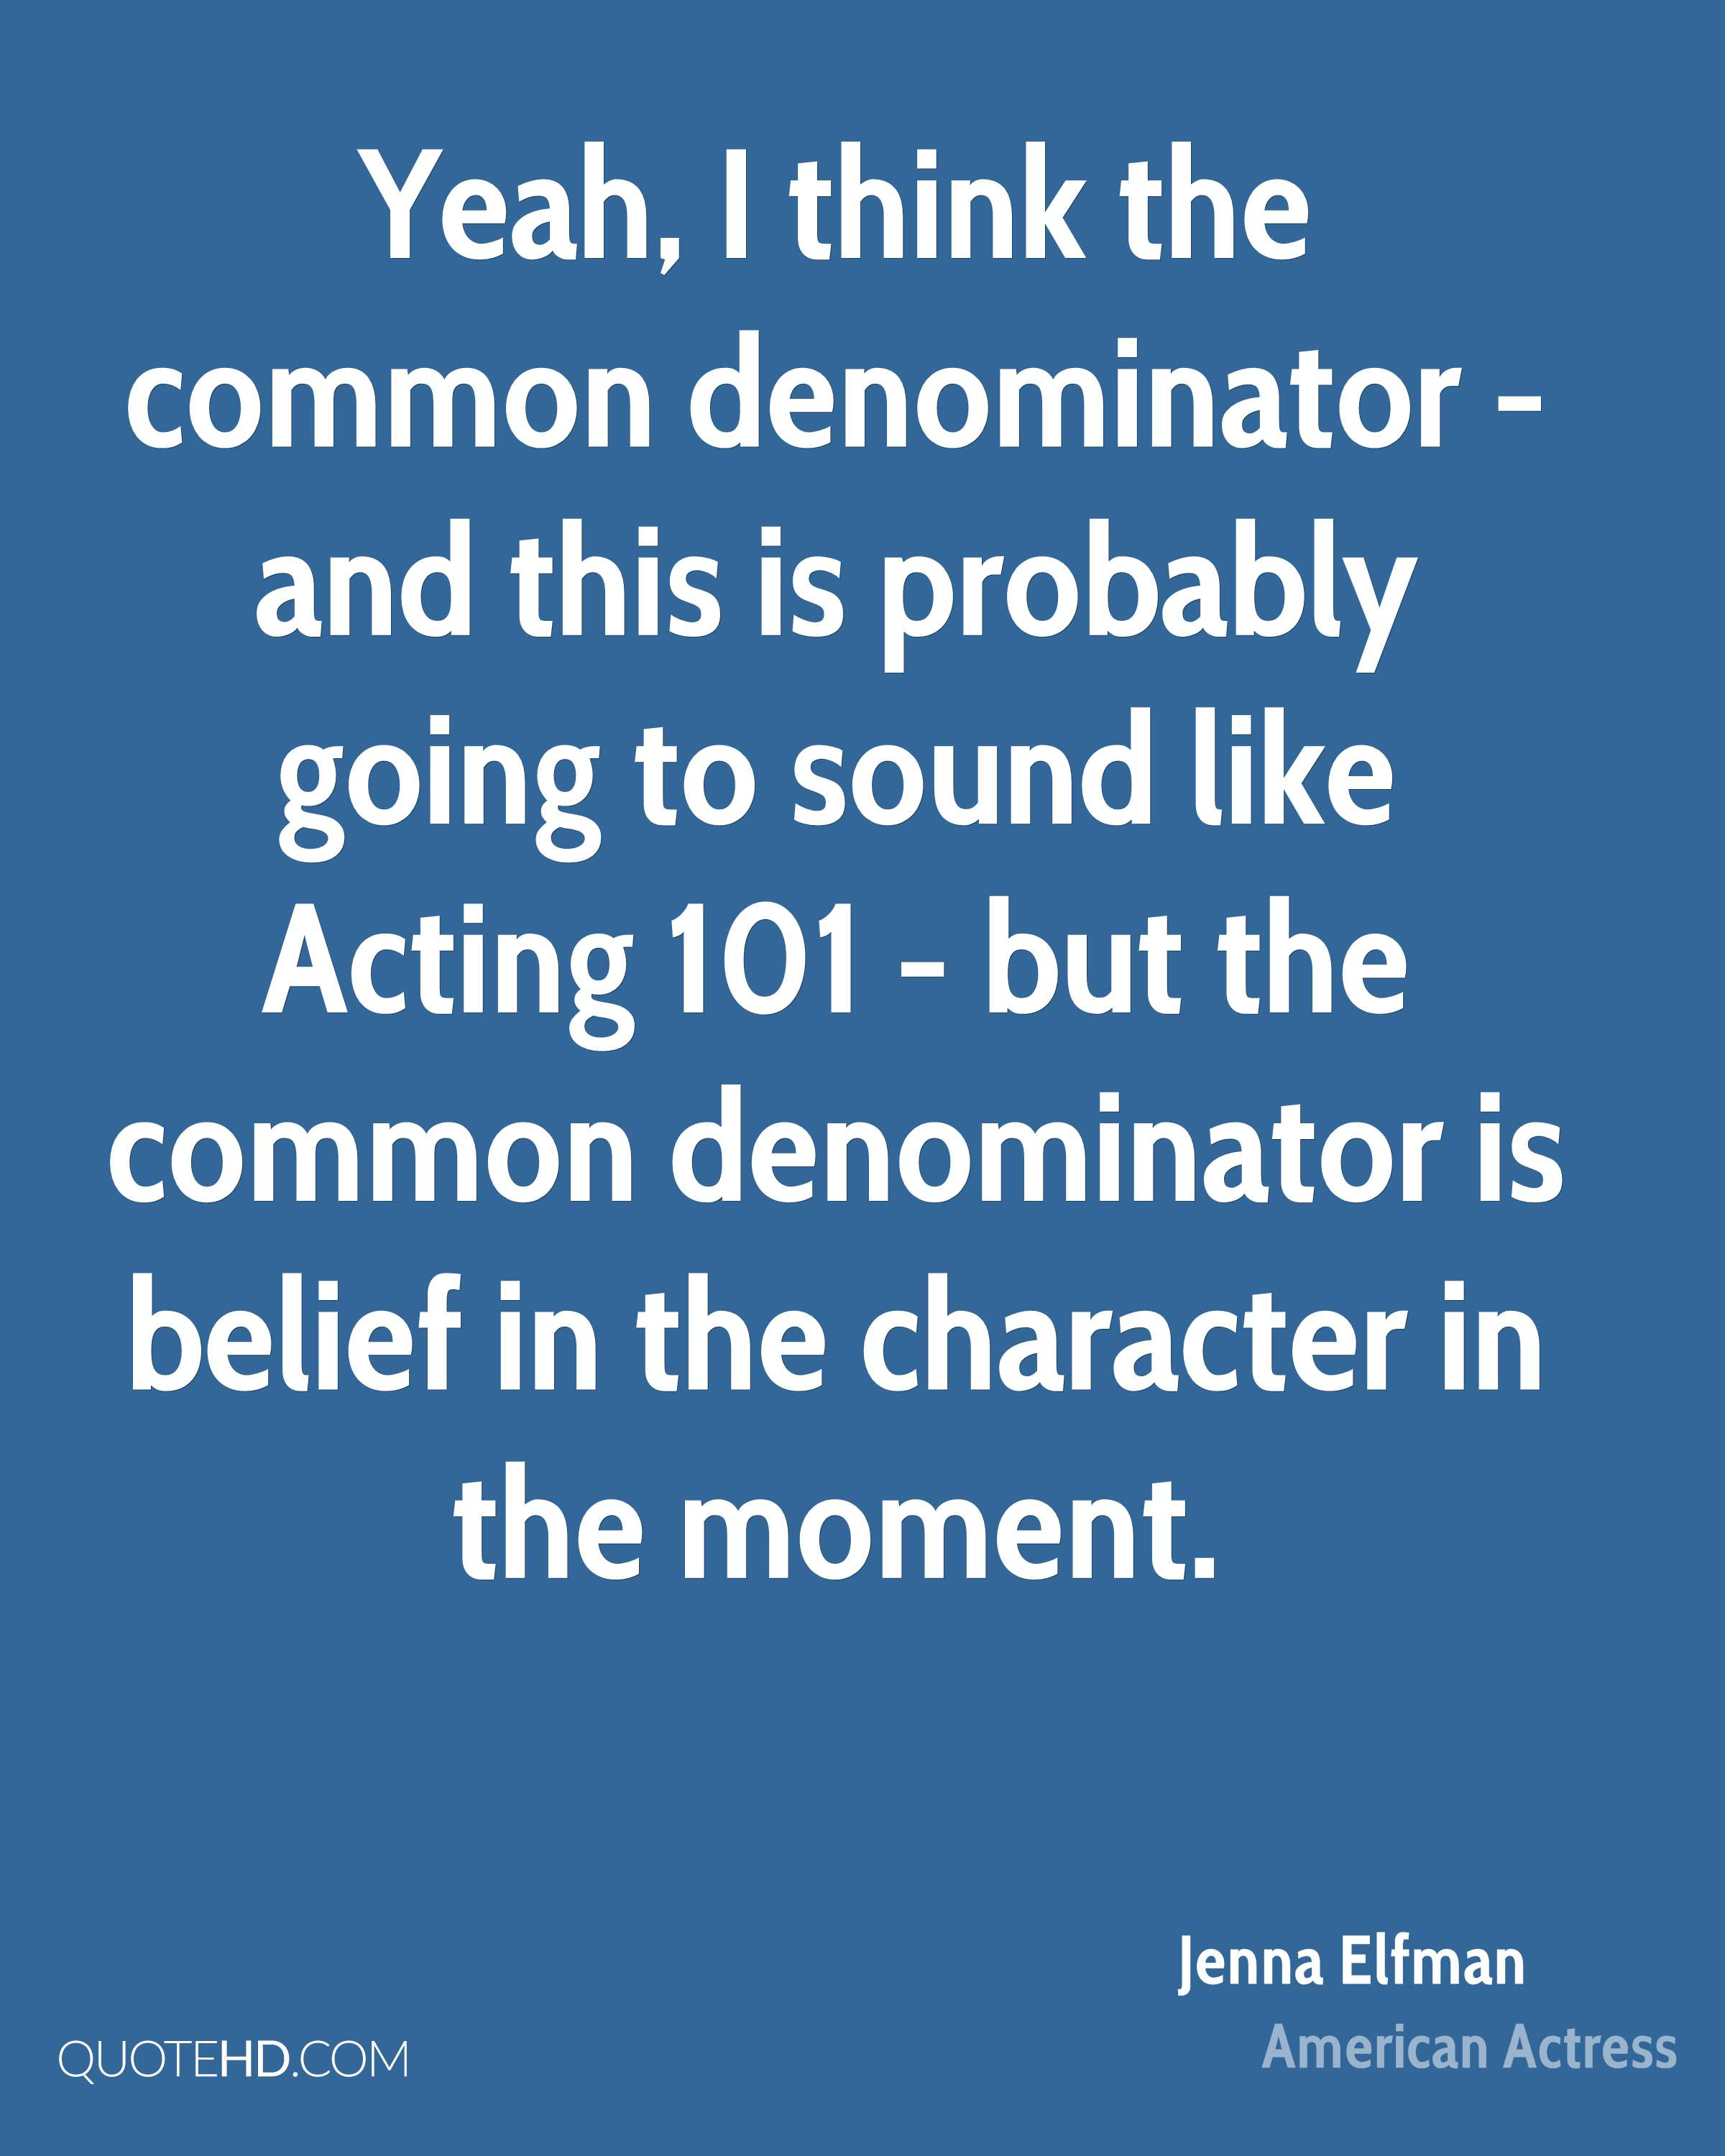 Yeah, I think the common denominator - and this is probably going to sound like Acting 101 - but the common denominator is belief in the character in the moment.